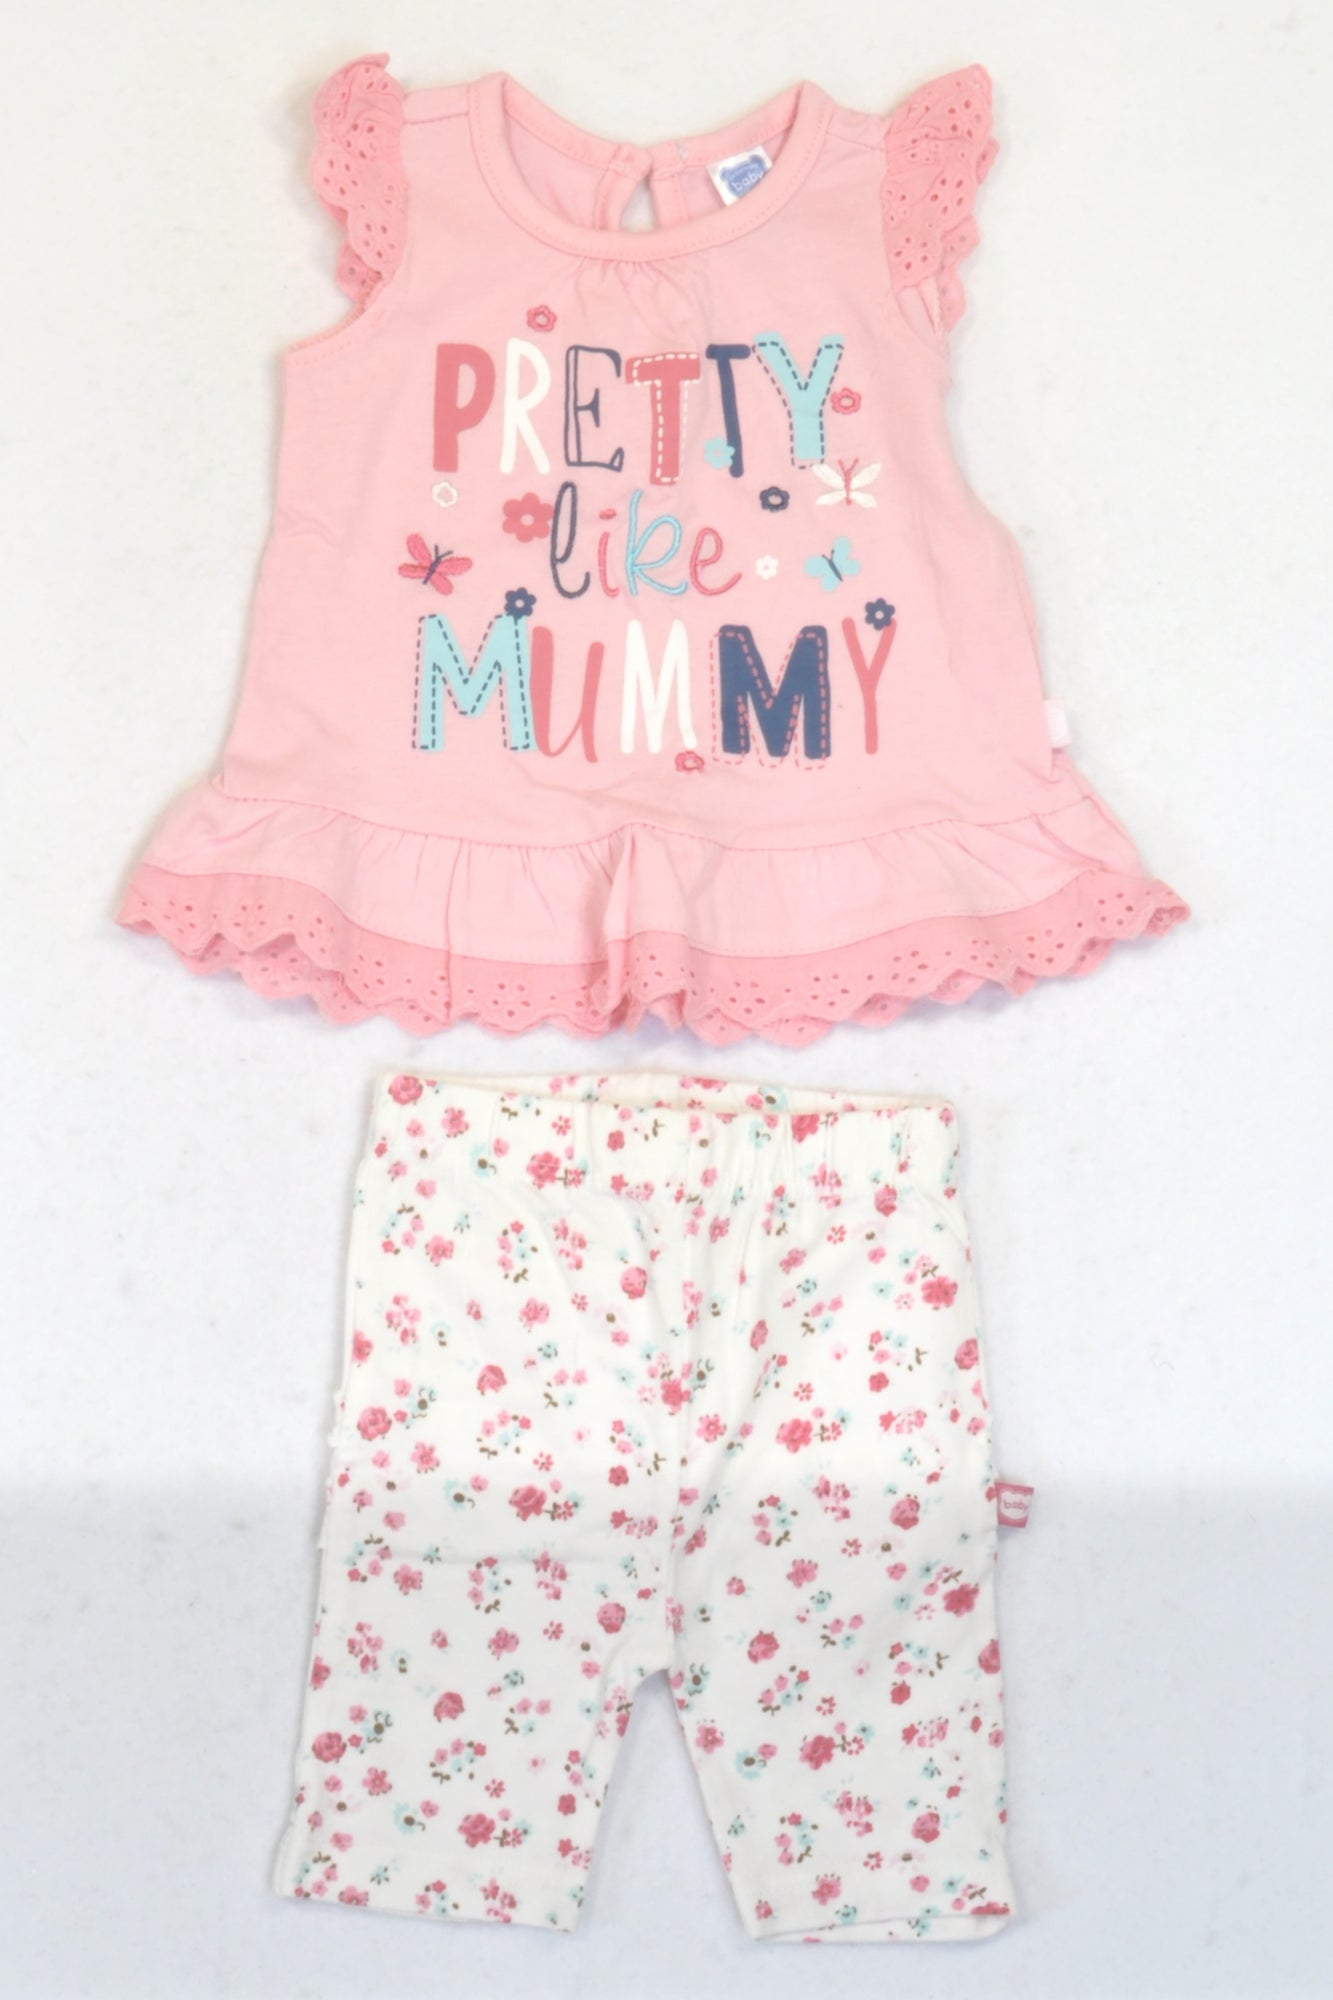 Ackermans Rose Pink Pretty Like Mummy Top & Cropped Floral Leggings Outfit Girls 0-3 months